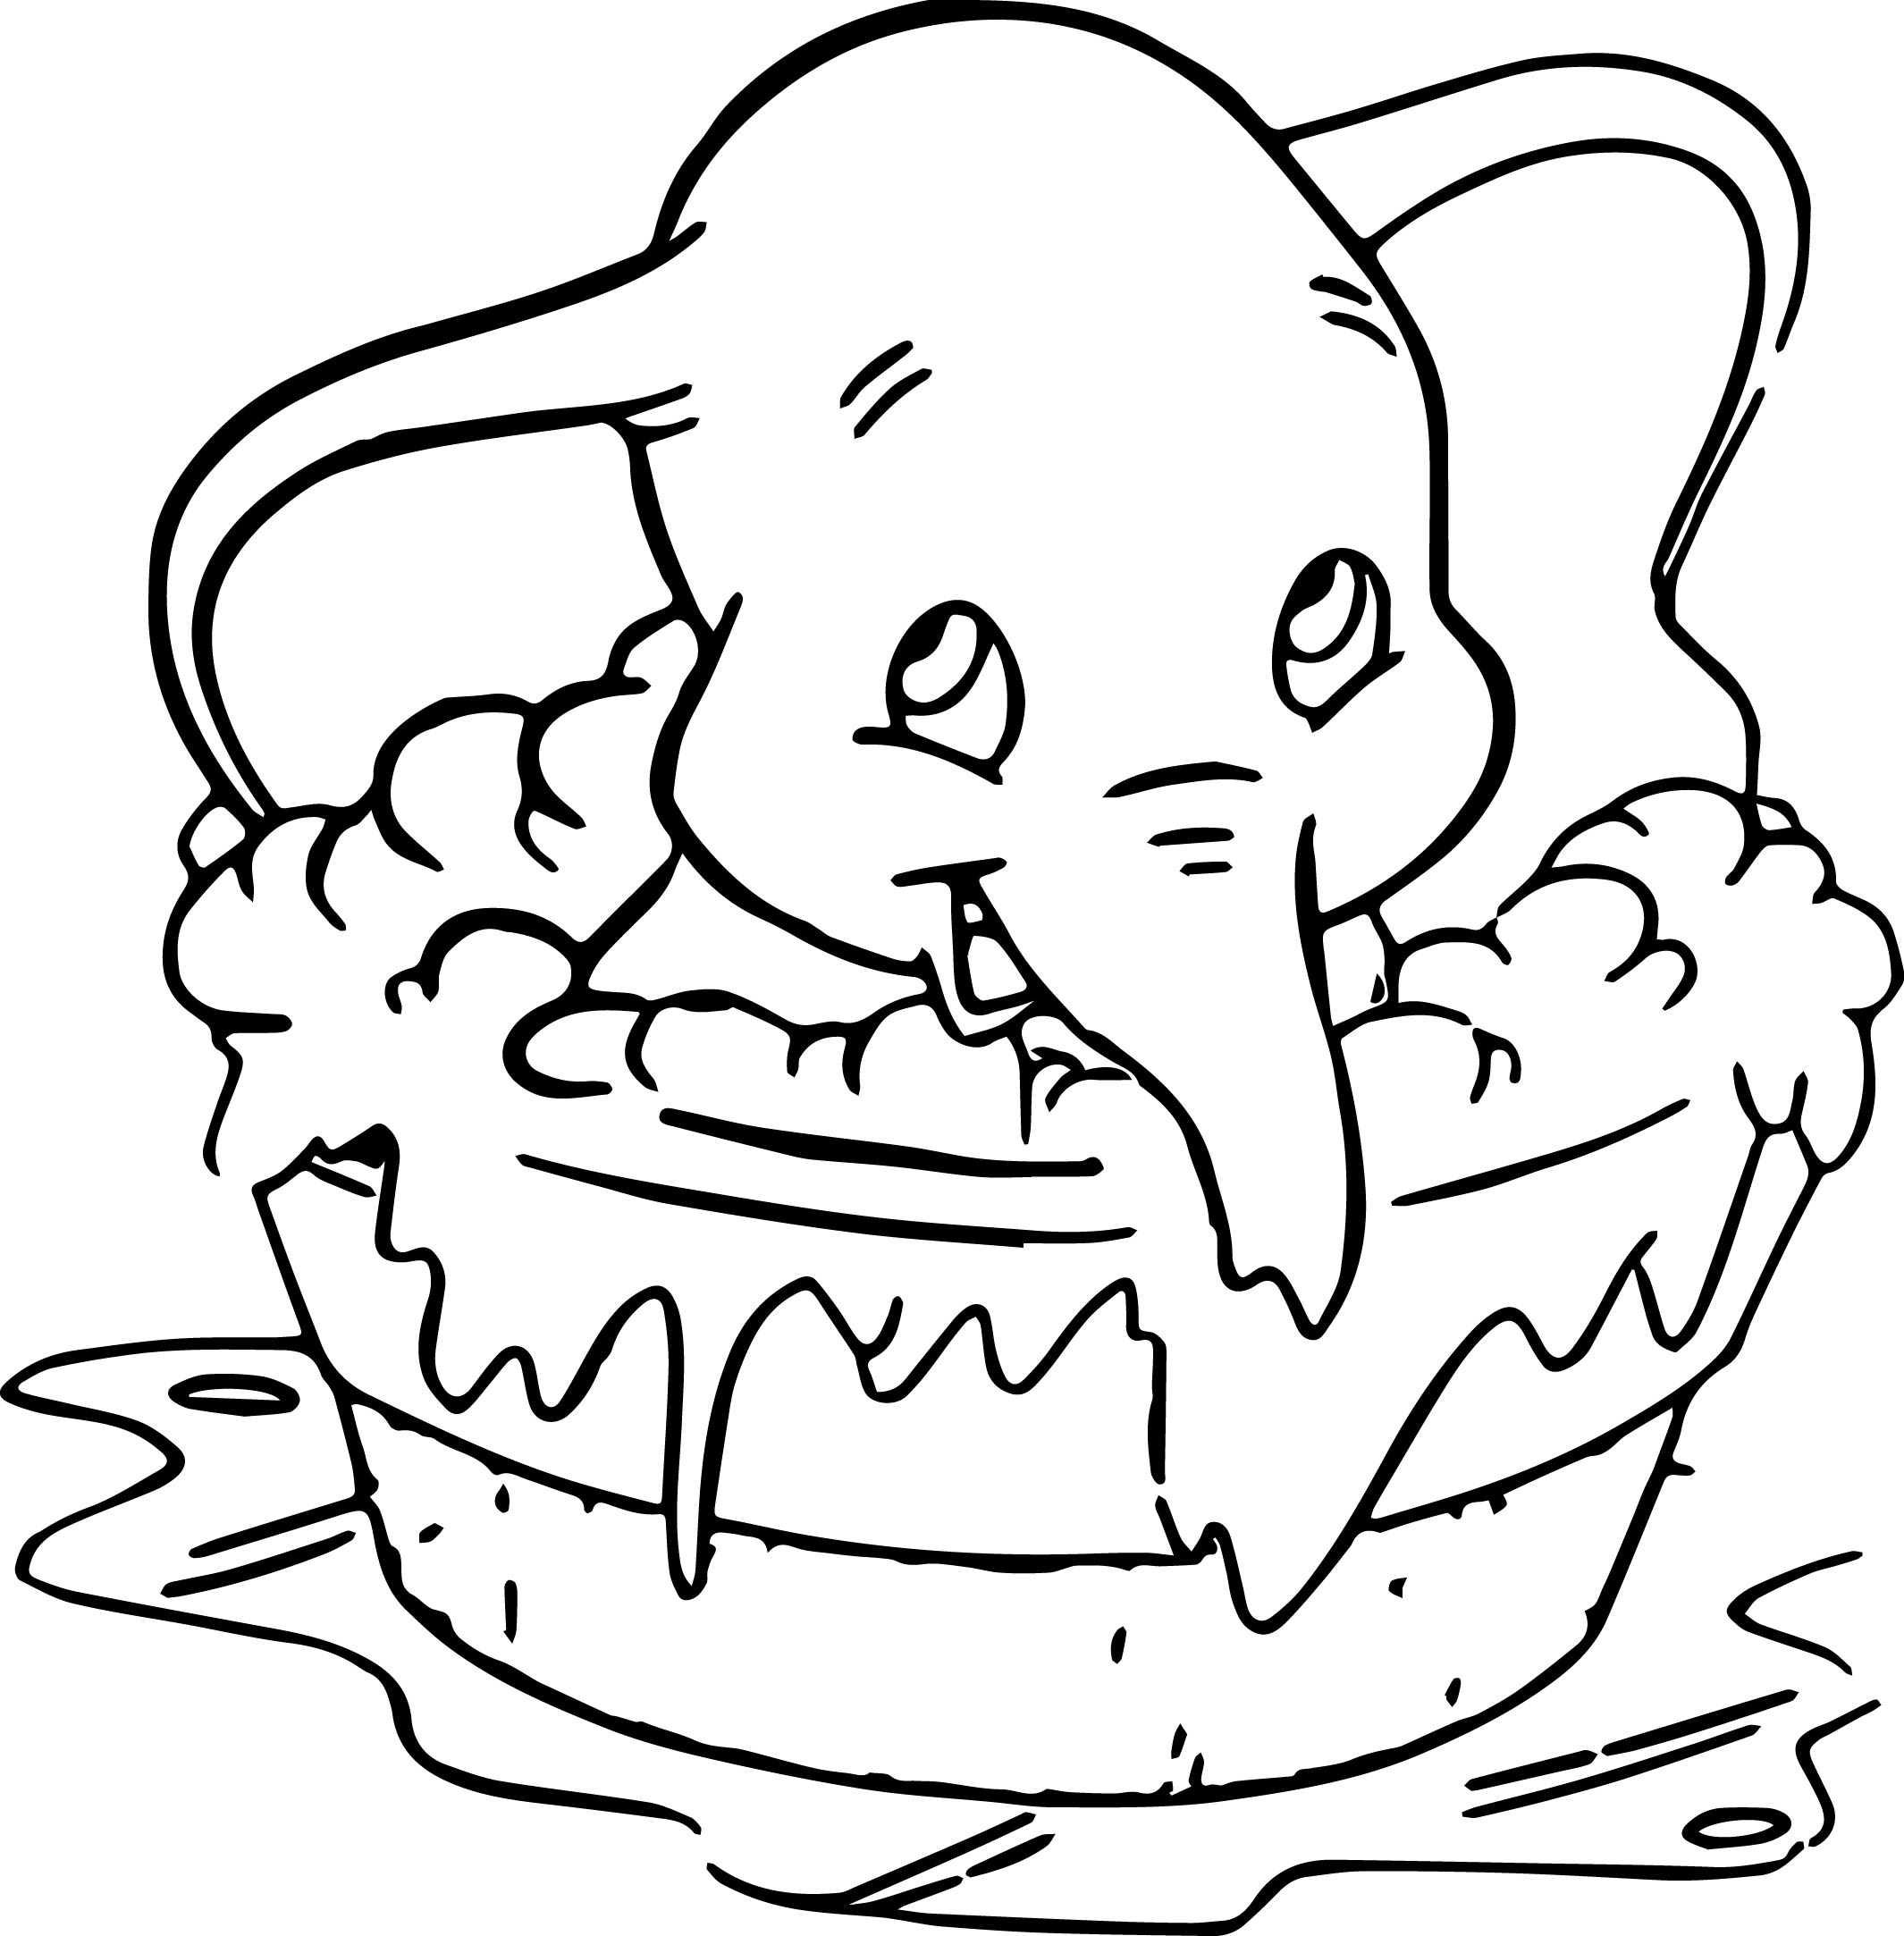 disney dumbo elephant coloring pages - Dumbo Elephant Coloring Pages